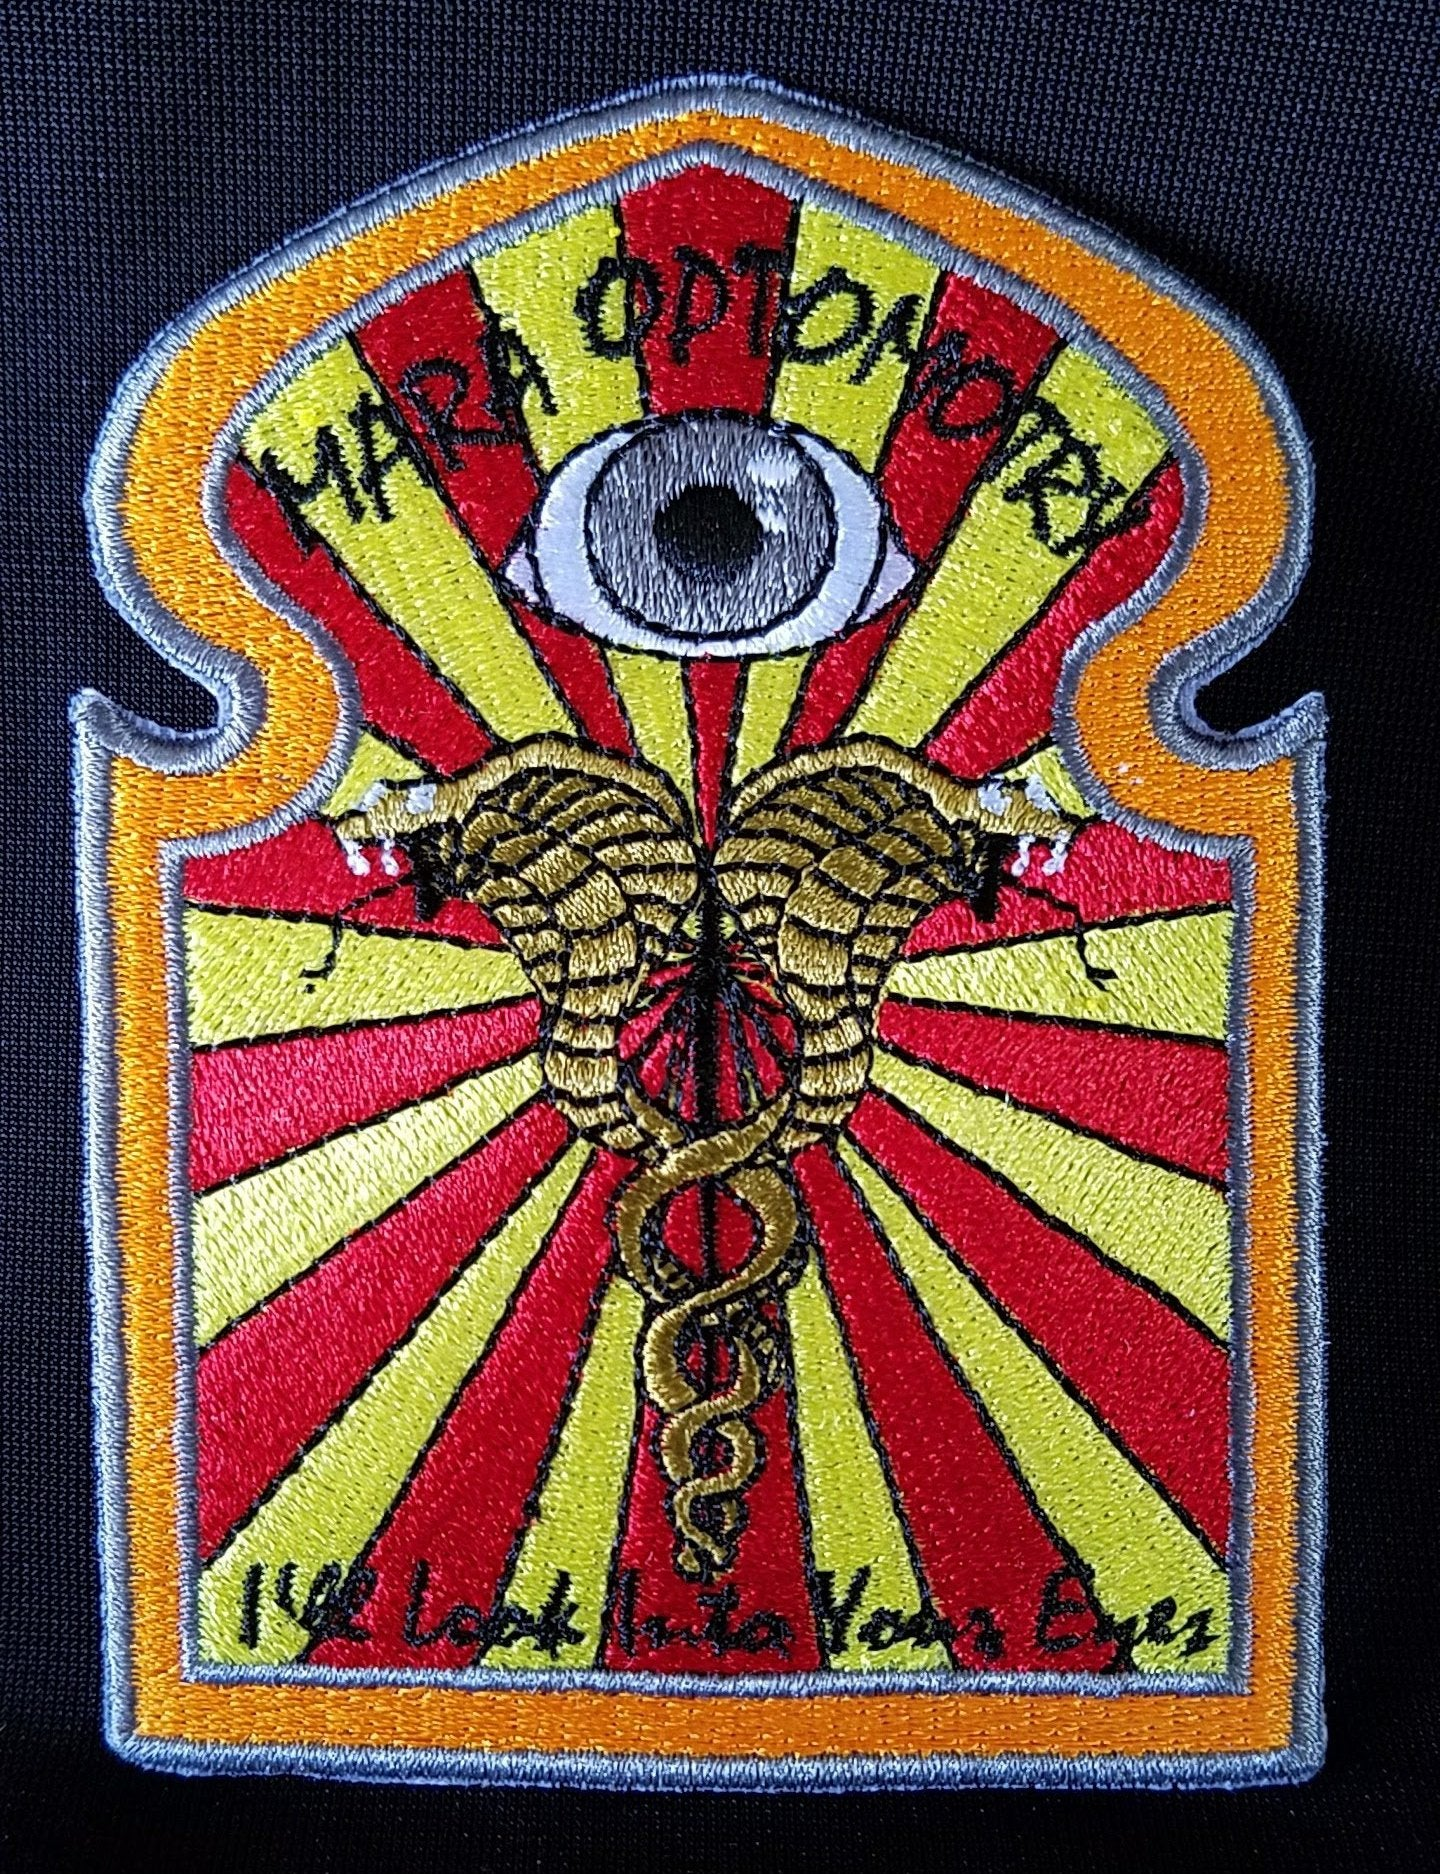 Mara Patch Inspired by Disneyland's Indiana Jones Adventure – November 2017 (Limited Edition) - Obscure Disney